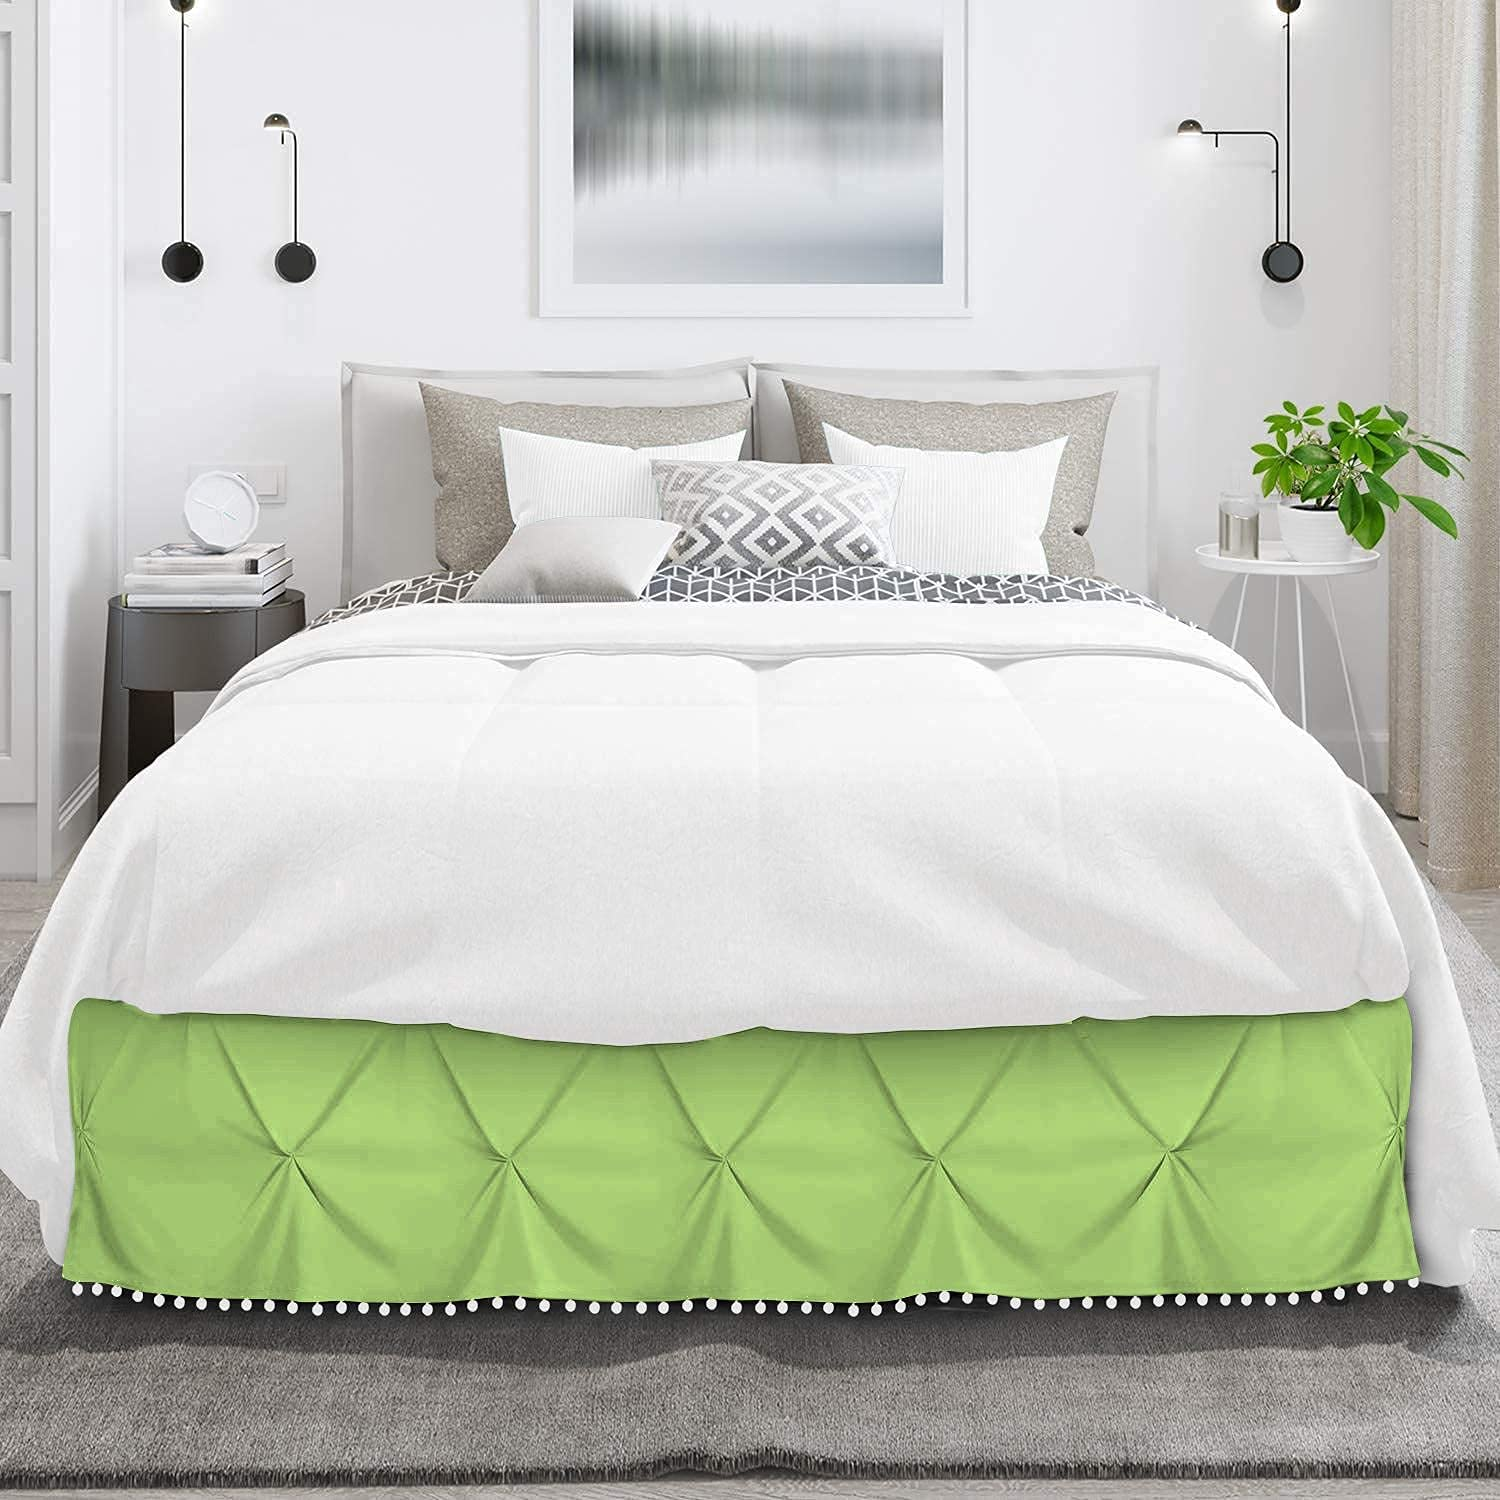 International Sheets Pom Pinch Pleated Max 74% OFF Ranking integrated 1st place 100% Egyptia BedSkirt